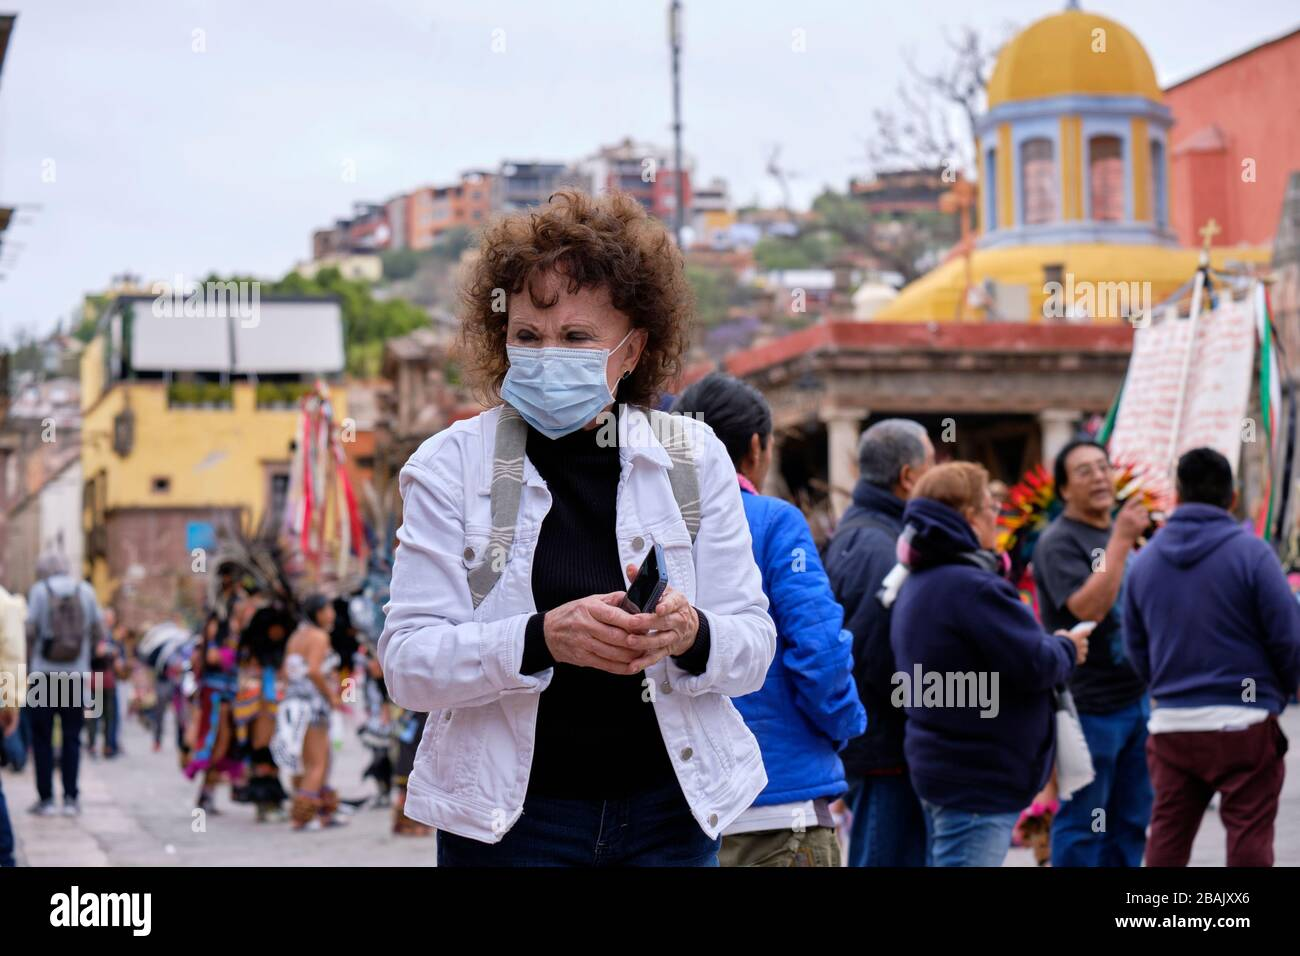 san-miguel-de-allende-mexico-tourist-wearing-a-facial-mask-during-annual-celebration-of-the-seor-de-la-conquista-to-protect-against-spread-2BAJXX6.jpg